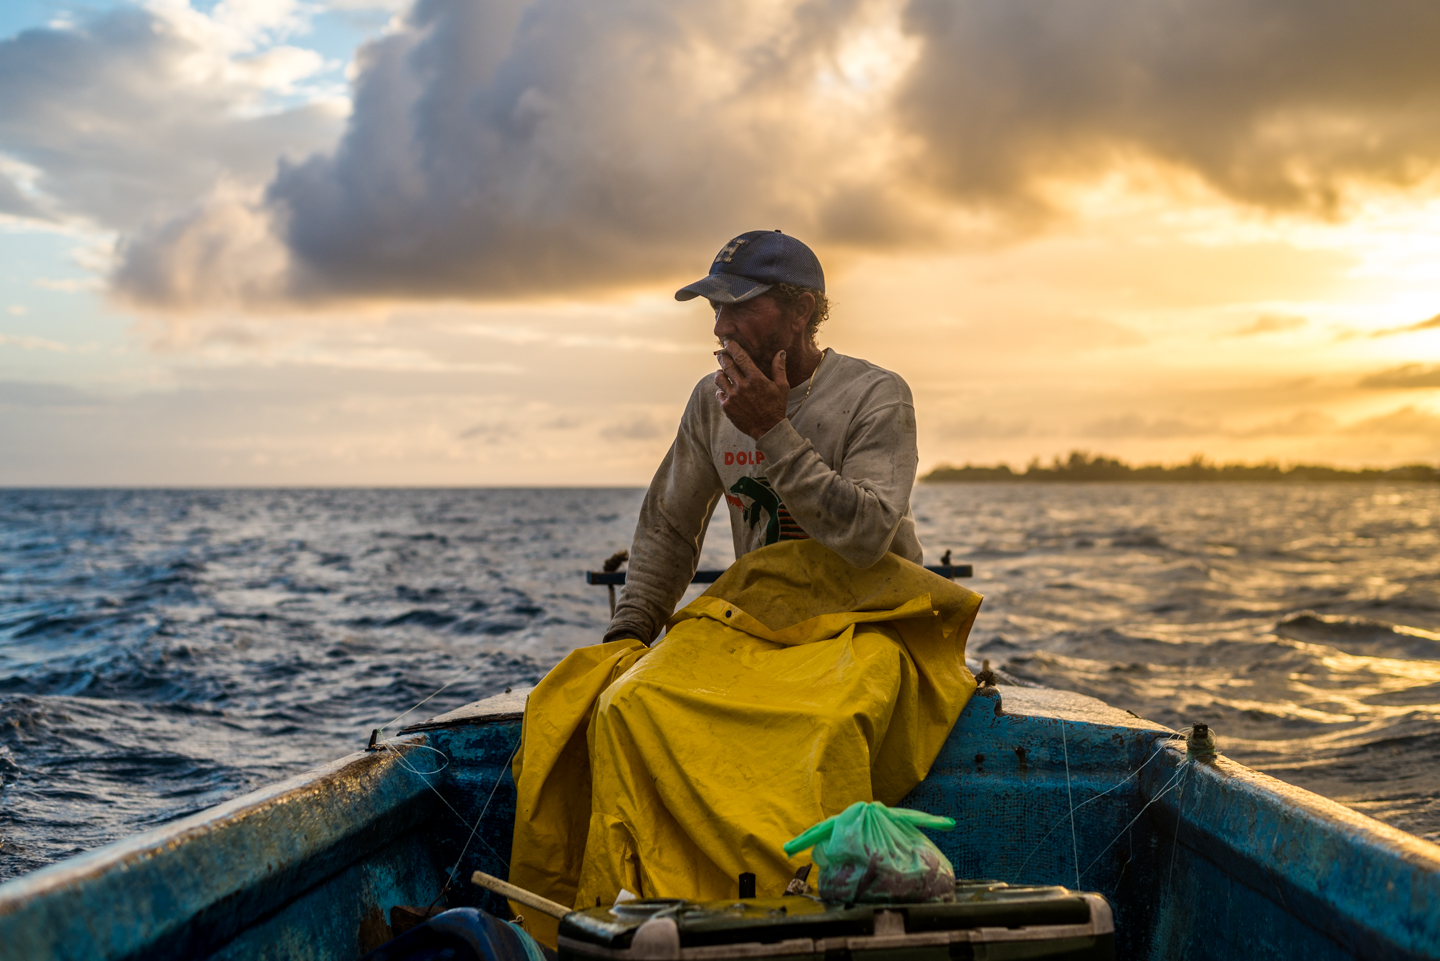 The Real Old Man and The Sea - A photo essay on Sorro, the fisherman